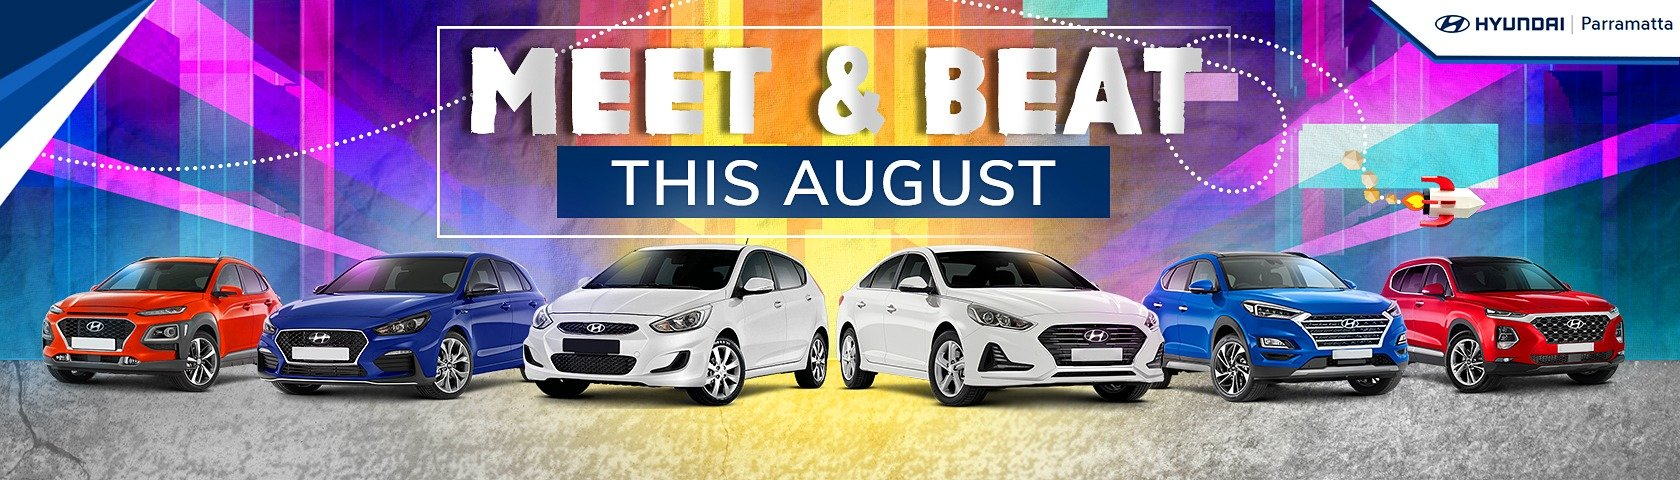 Meet and beat sale